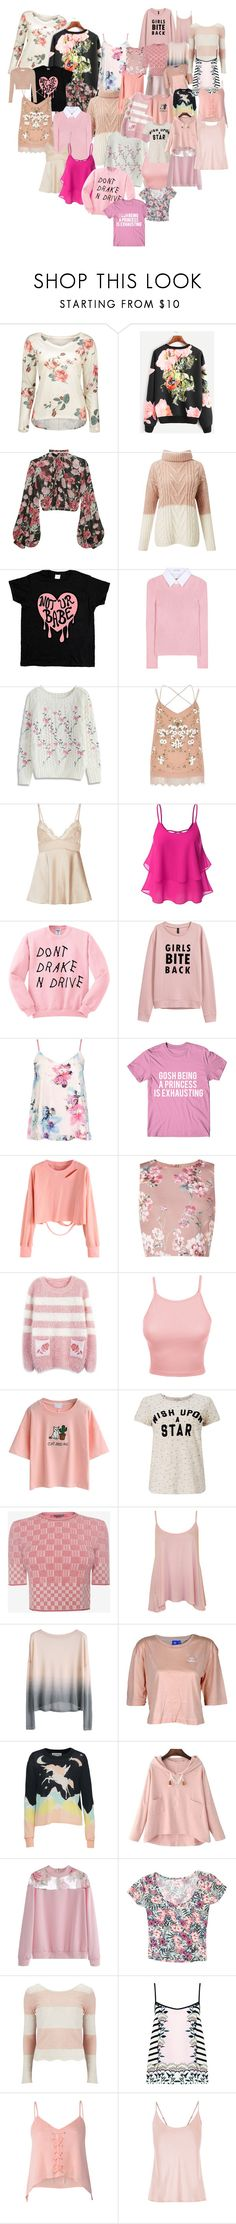 """""""Hayden Scamander"""" by daughter-of-poseidon-gryffindor ❤ liked on Polyvore featuring Jill Stuart, Miss Selfridge, Altuzarra, Chicwish, River Island, Doublju, Dorothy Perkins, LE3NO, WithChic and Maison Scotch"""